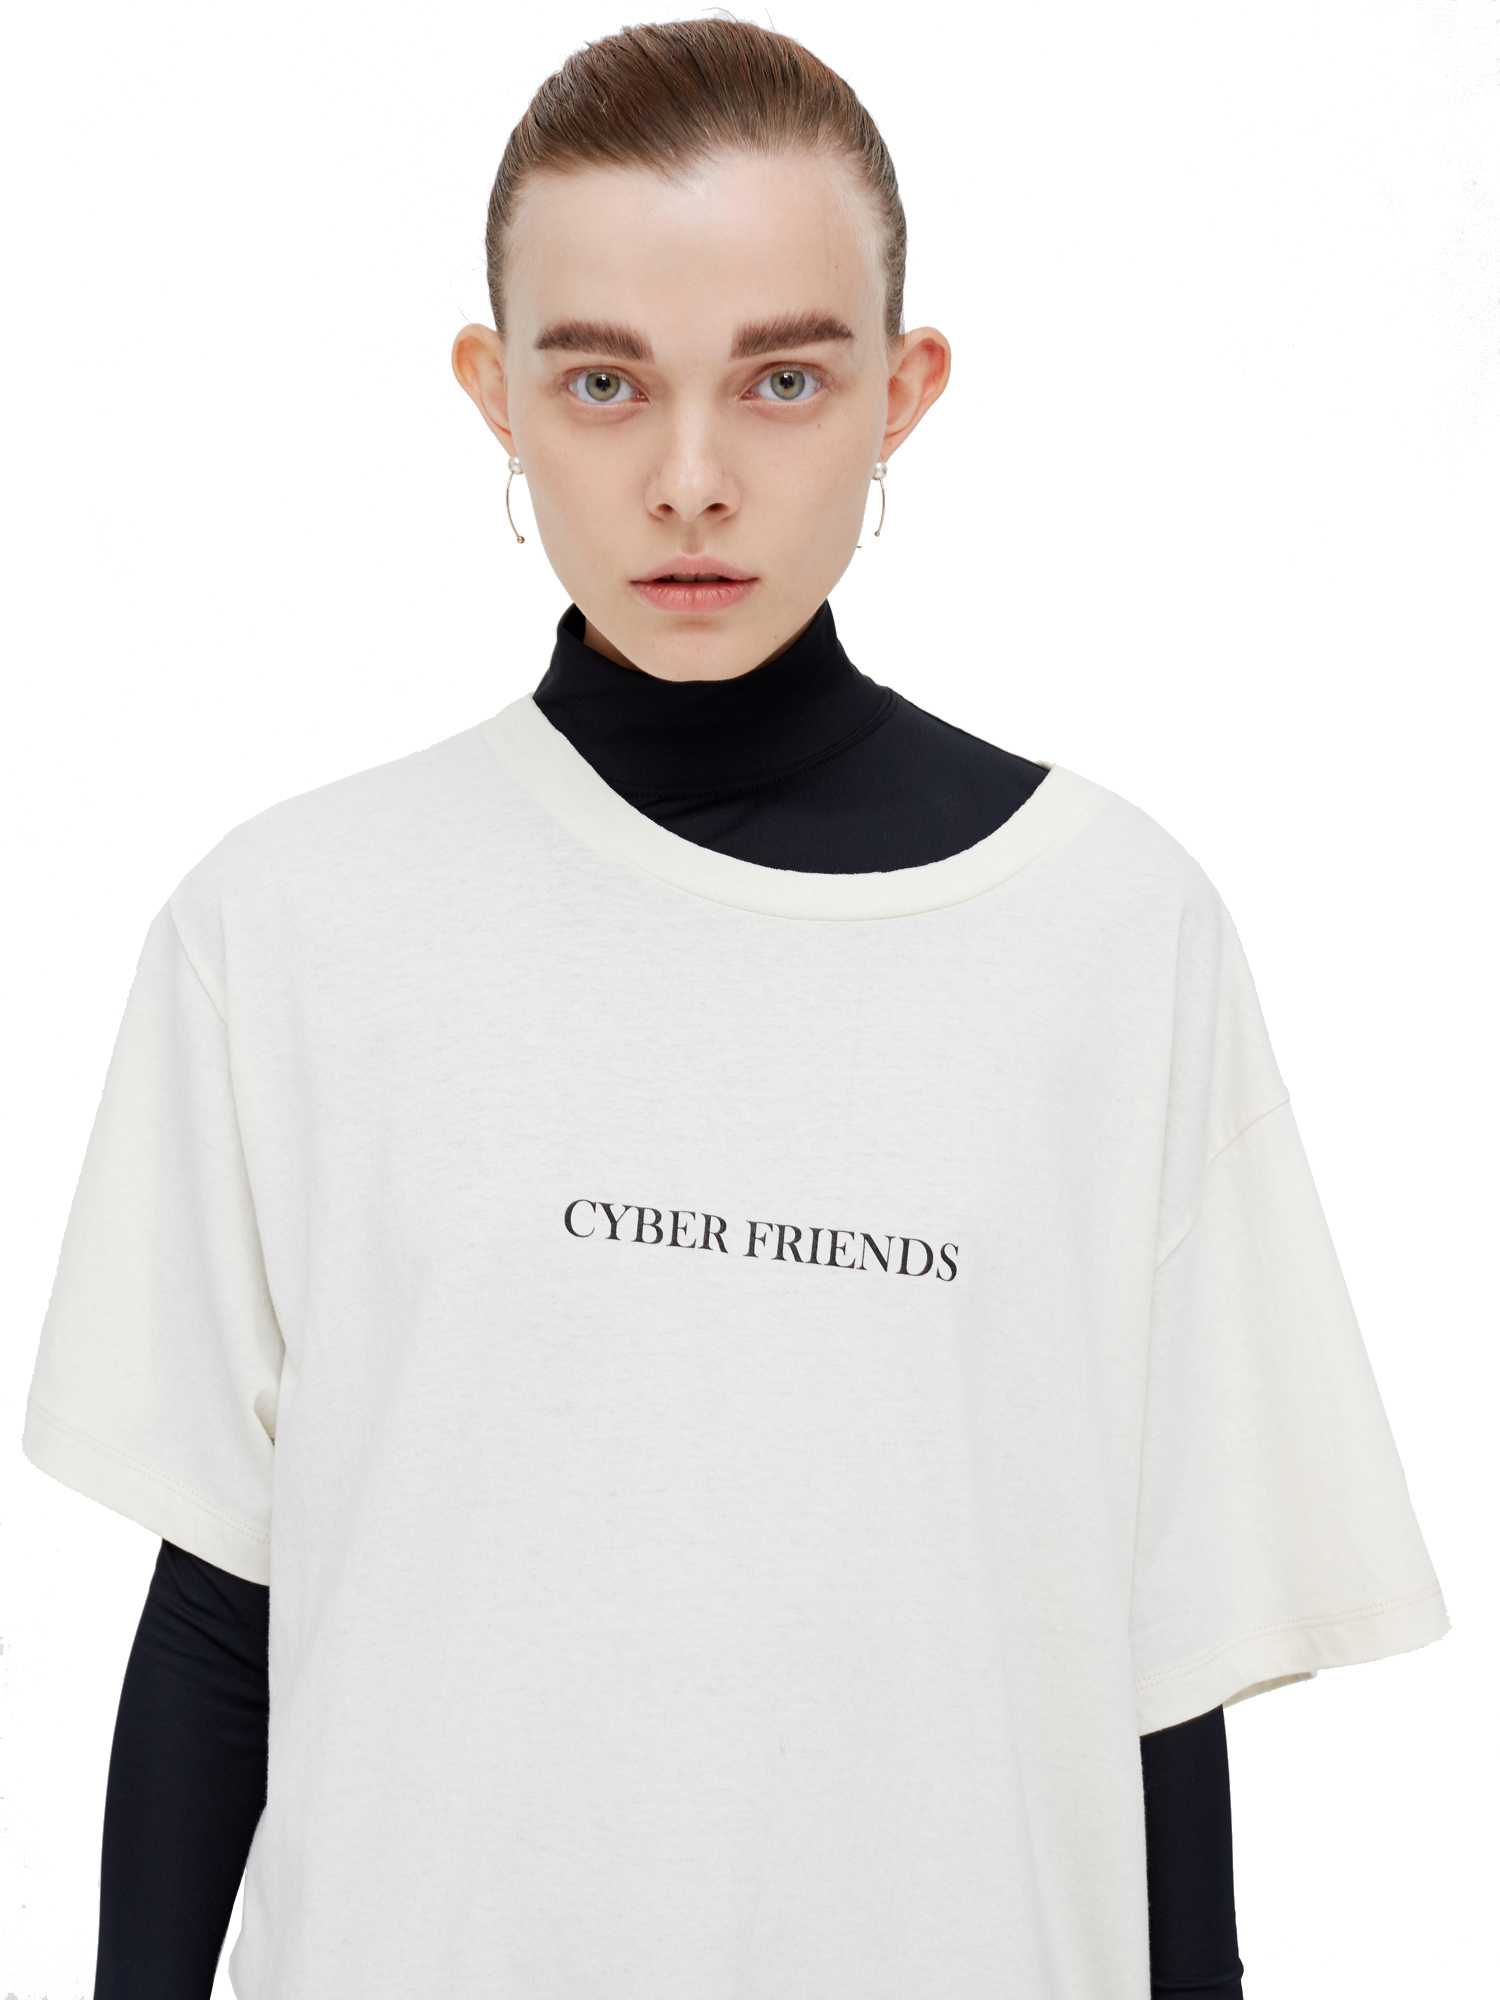 Quasi英国代购 WE11DONE GD CYBER FRIENDS LOGO TEE T恤